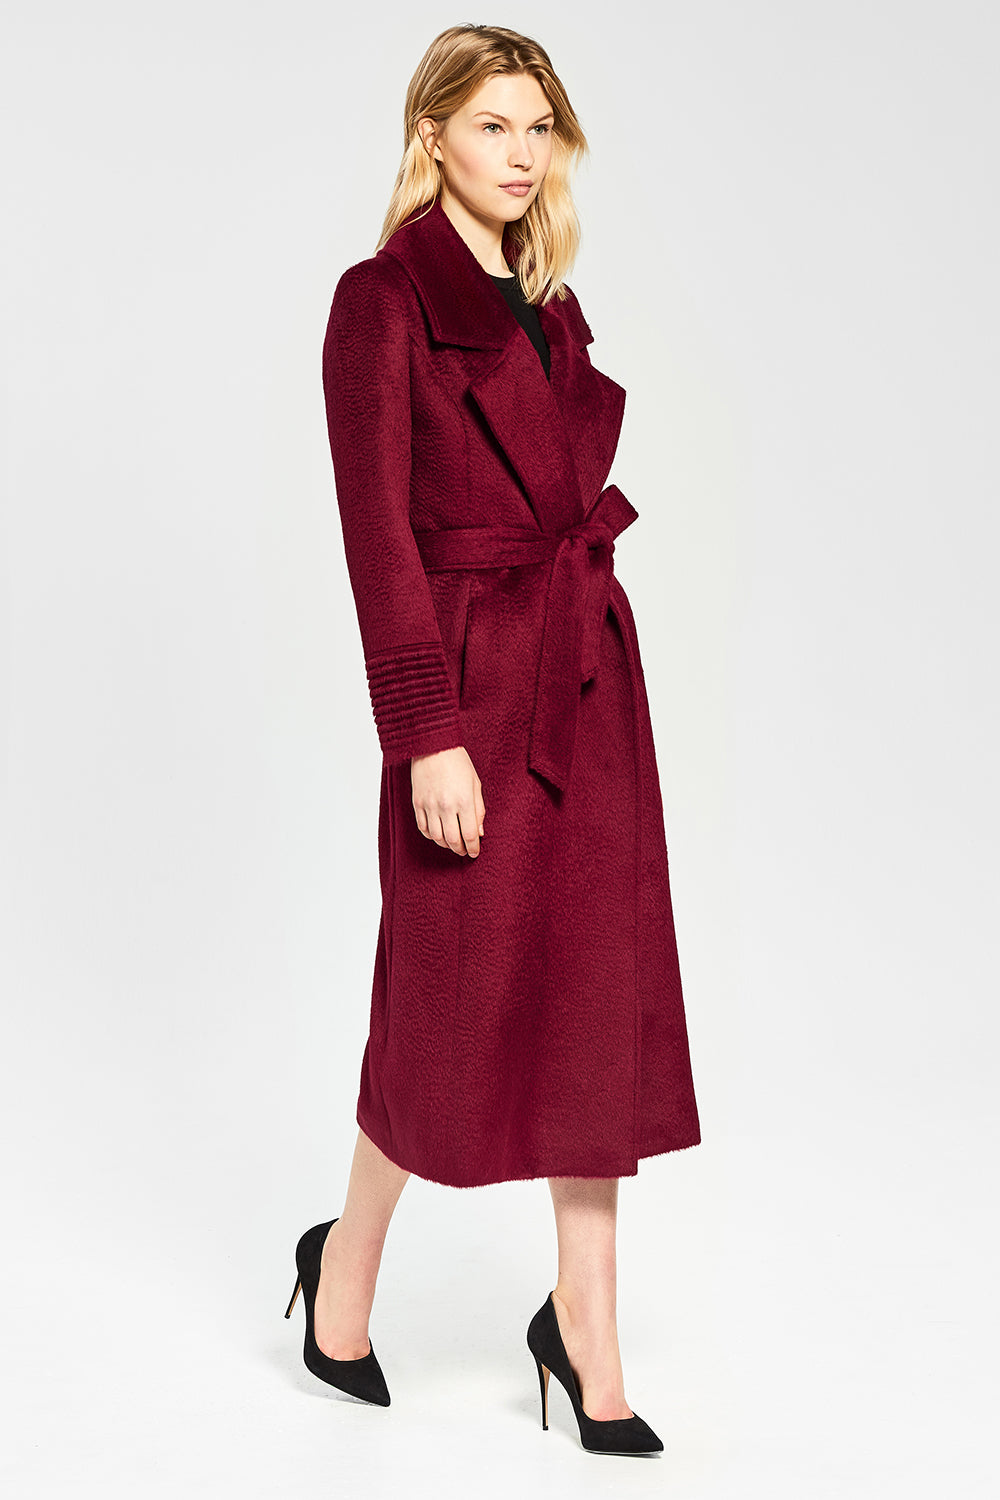 Sentaler Suri Alpaca Long Notched Collar Wrap Coat featured in Suri Alpaca and available in Bordeaux. Seen from side.